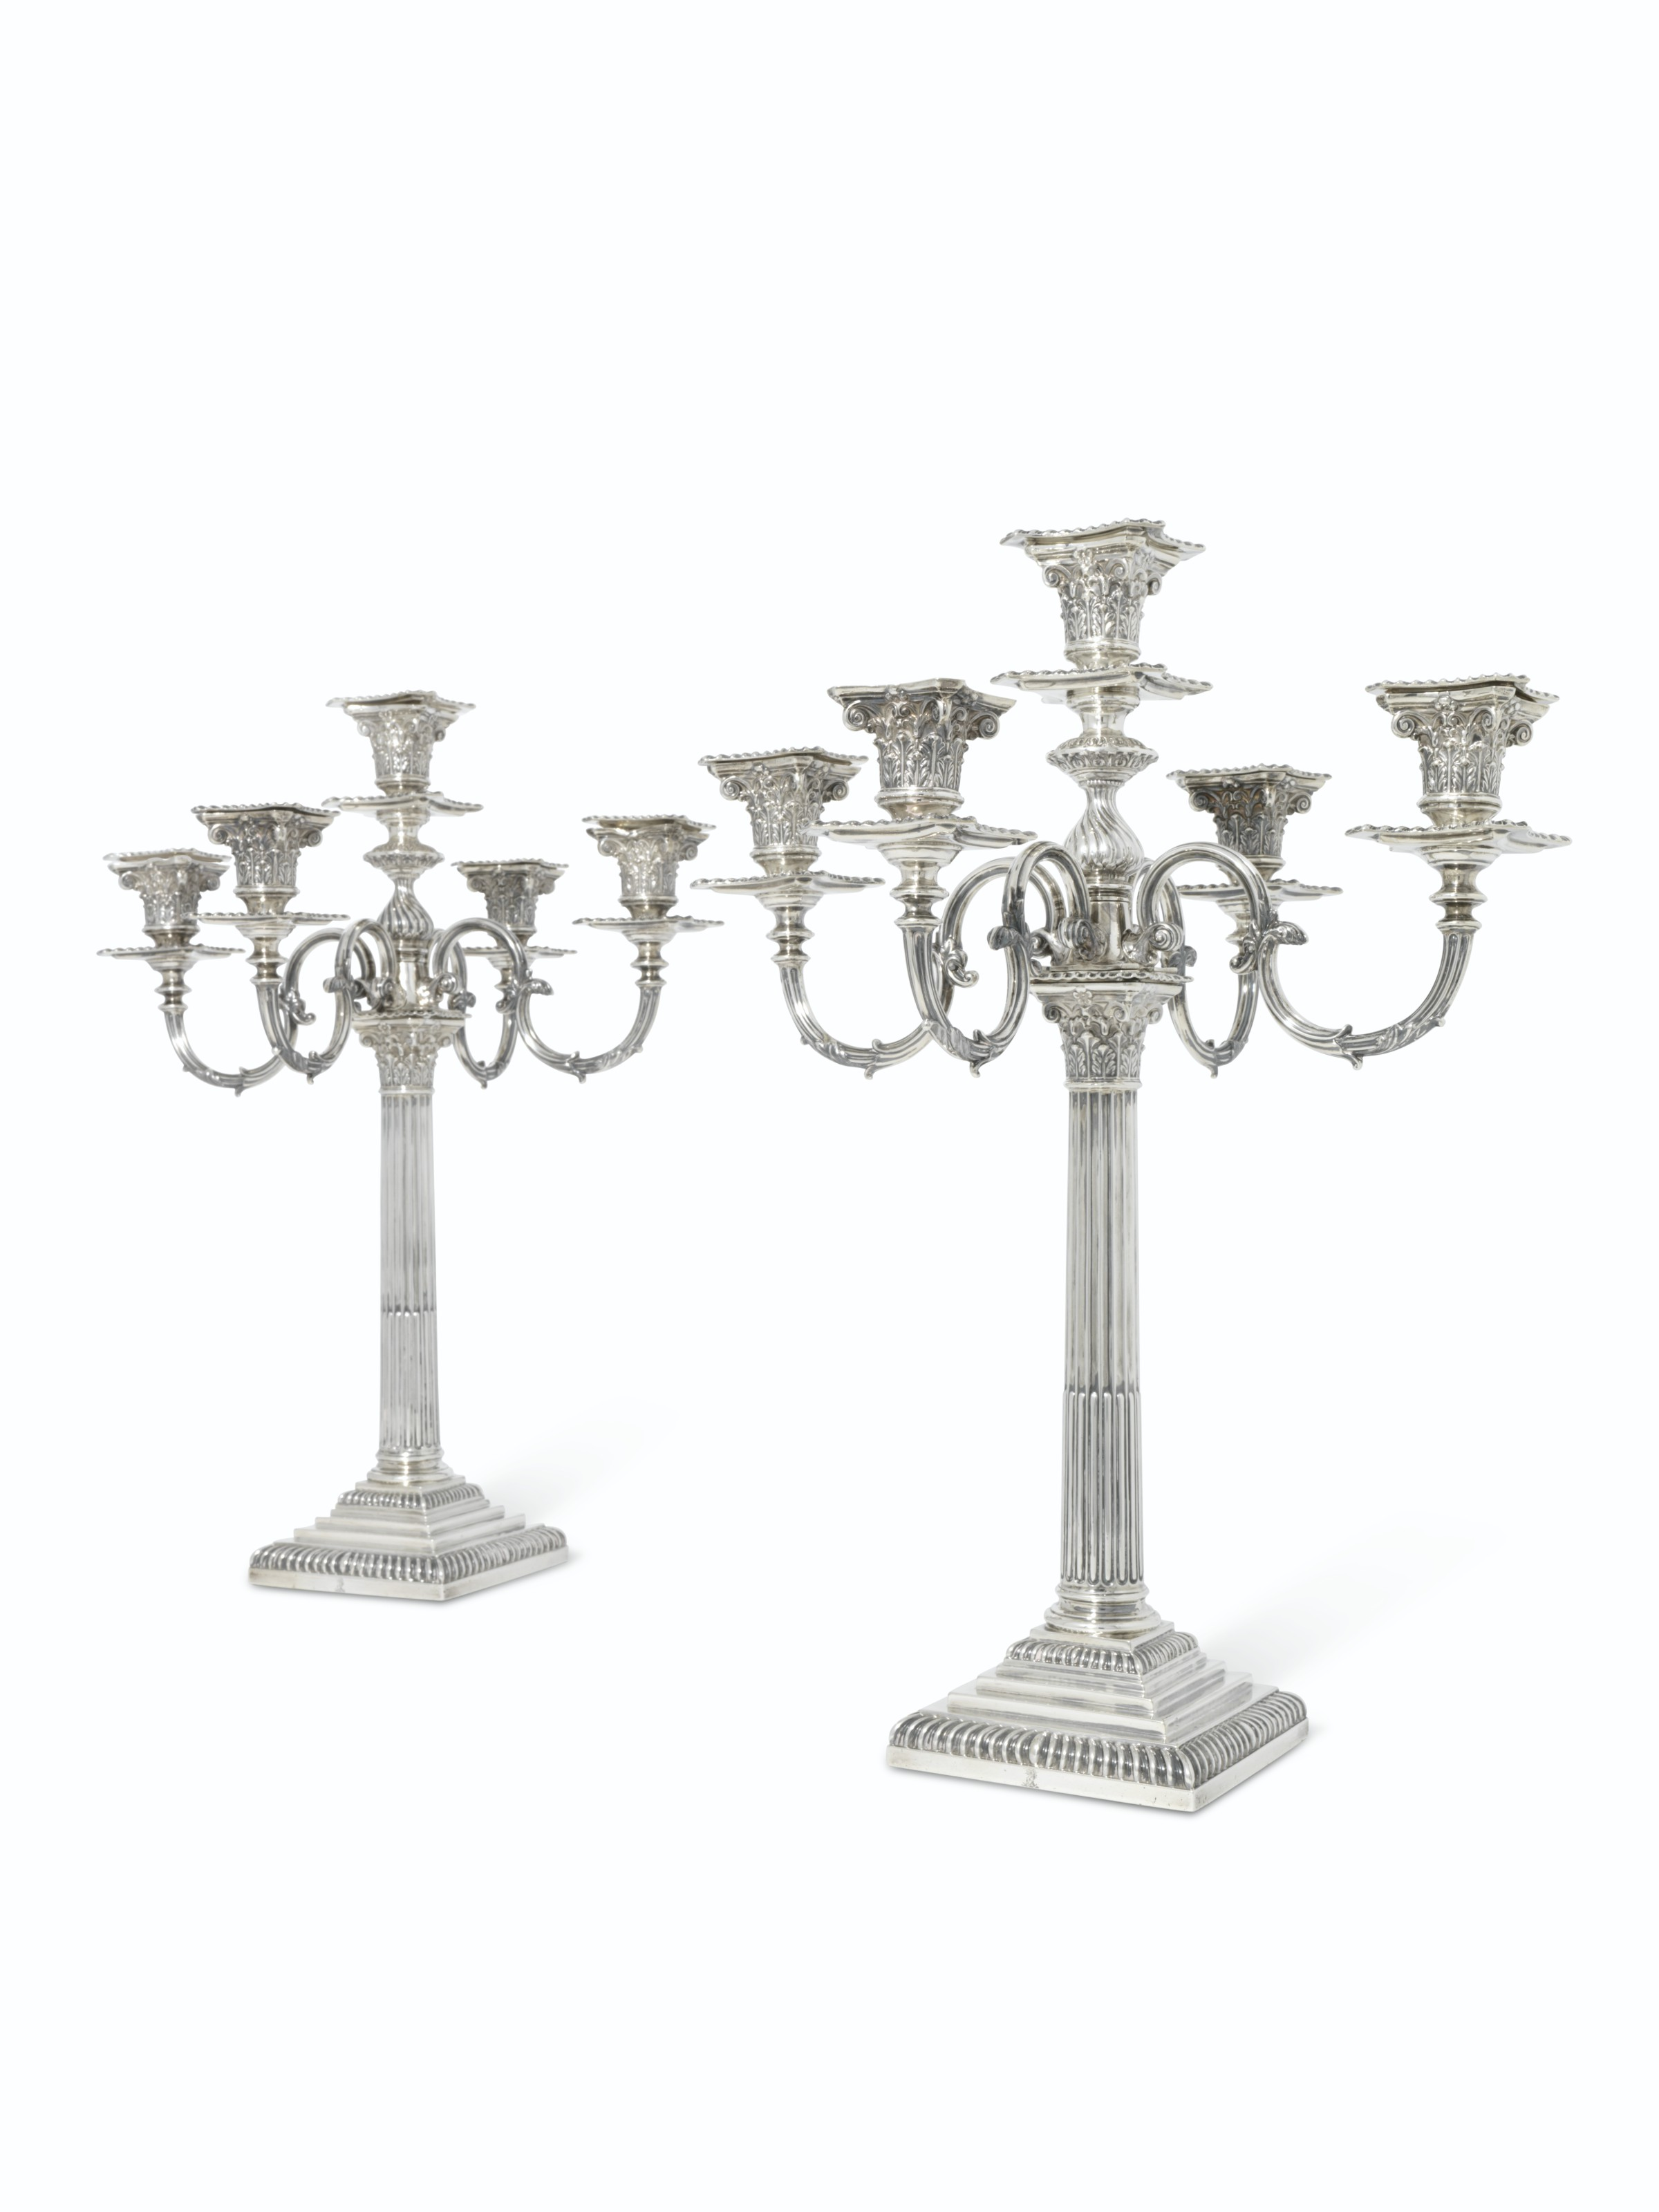 TWO VICTORIAN SILVER FIVE-LIGHT CANDELABRA , MARK OF